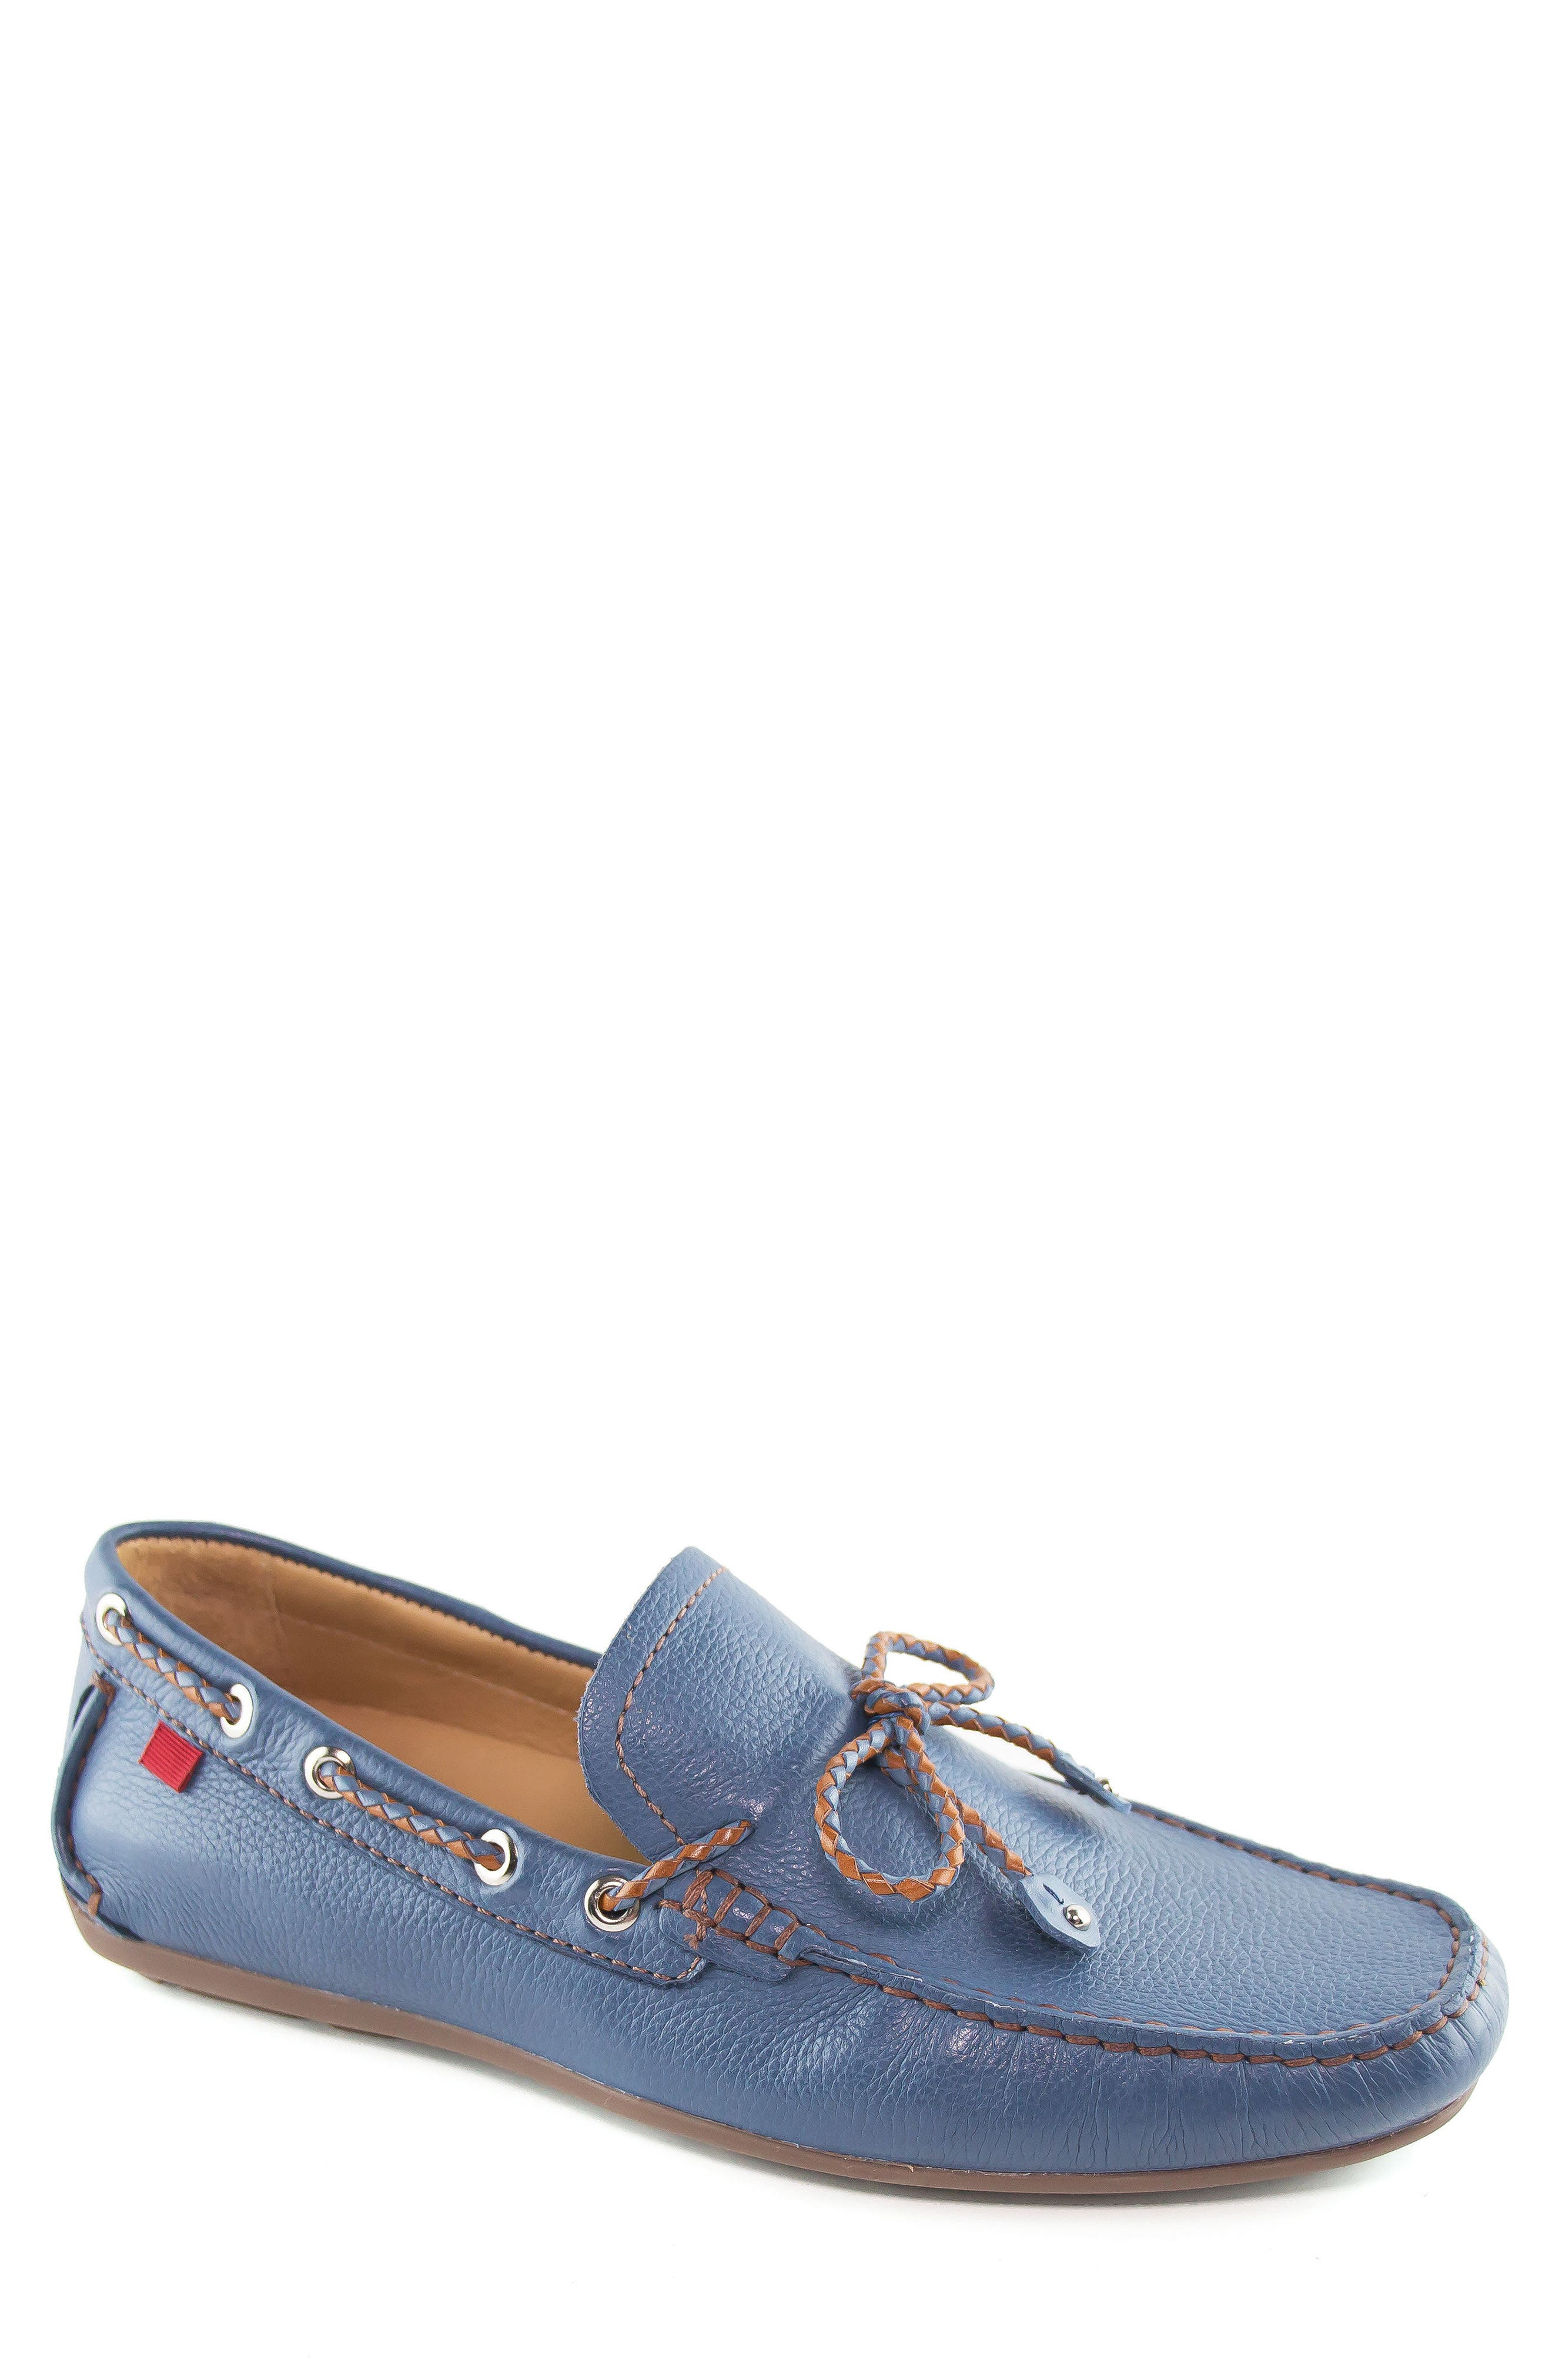 Main Image - Marc Joseph New York 'Cypress' Moccasin (Men)